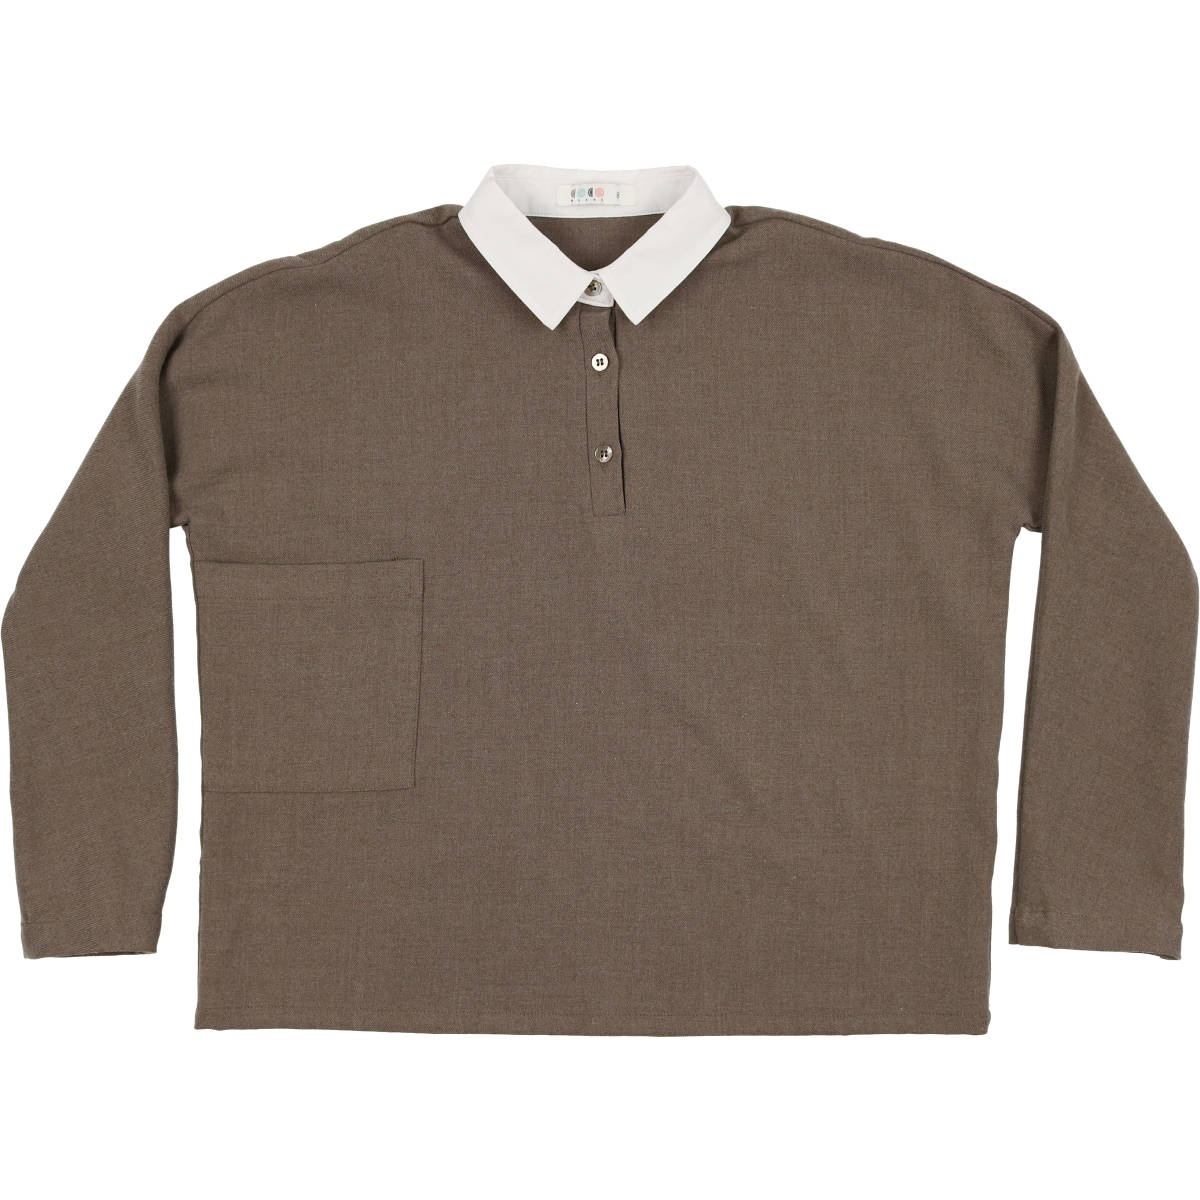 Coco Blanc Toffee Heathered Wool Shirt